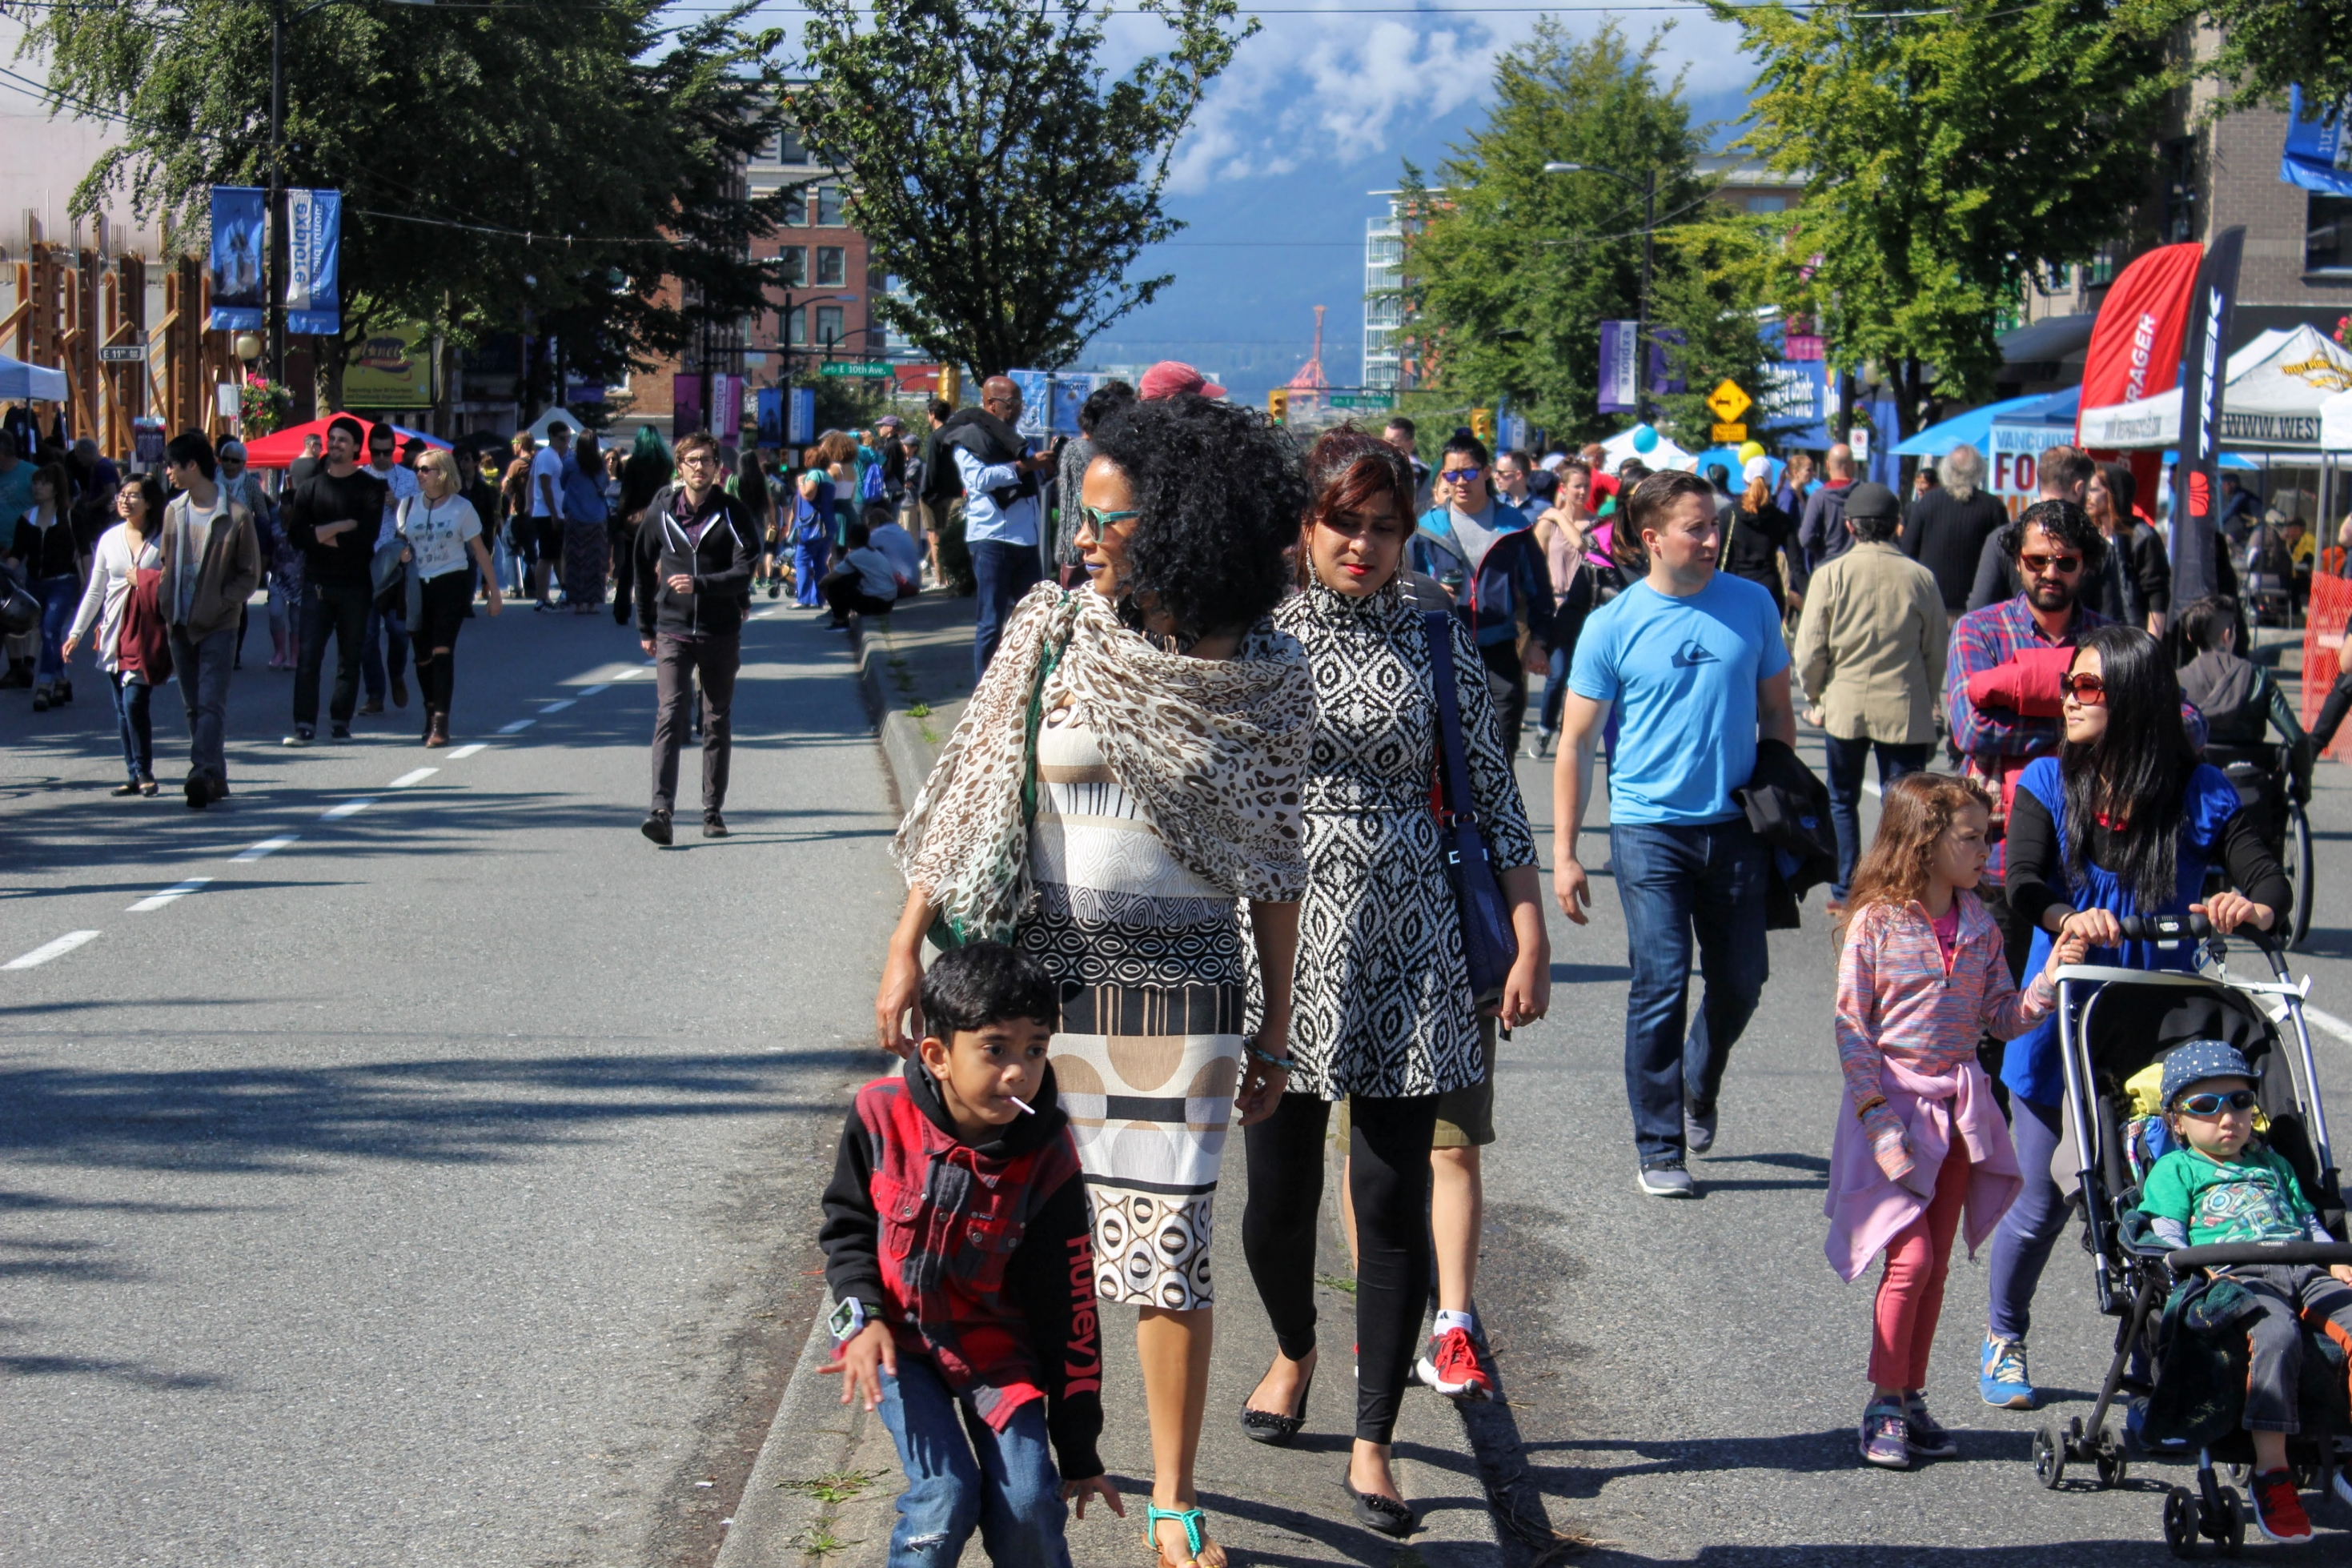 Car-free day celebration on Main street